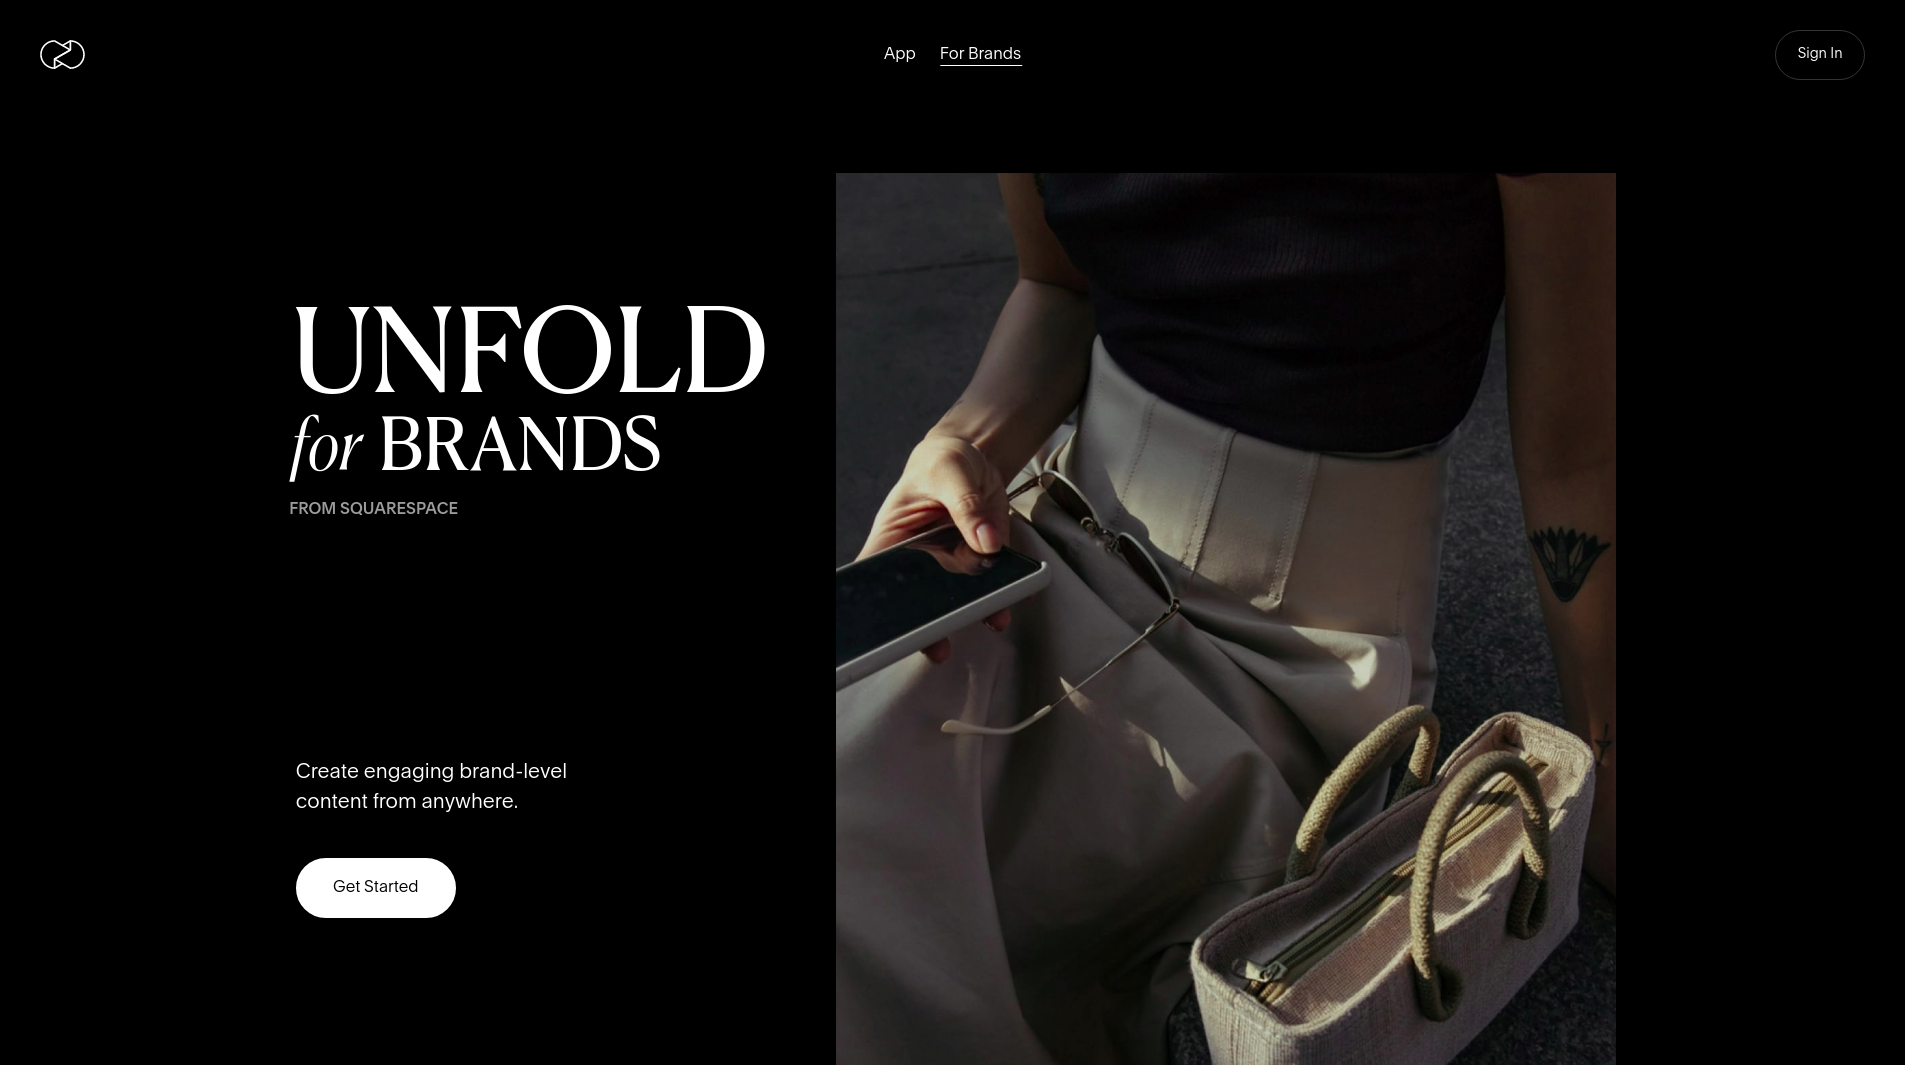 About Unfold for Brands